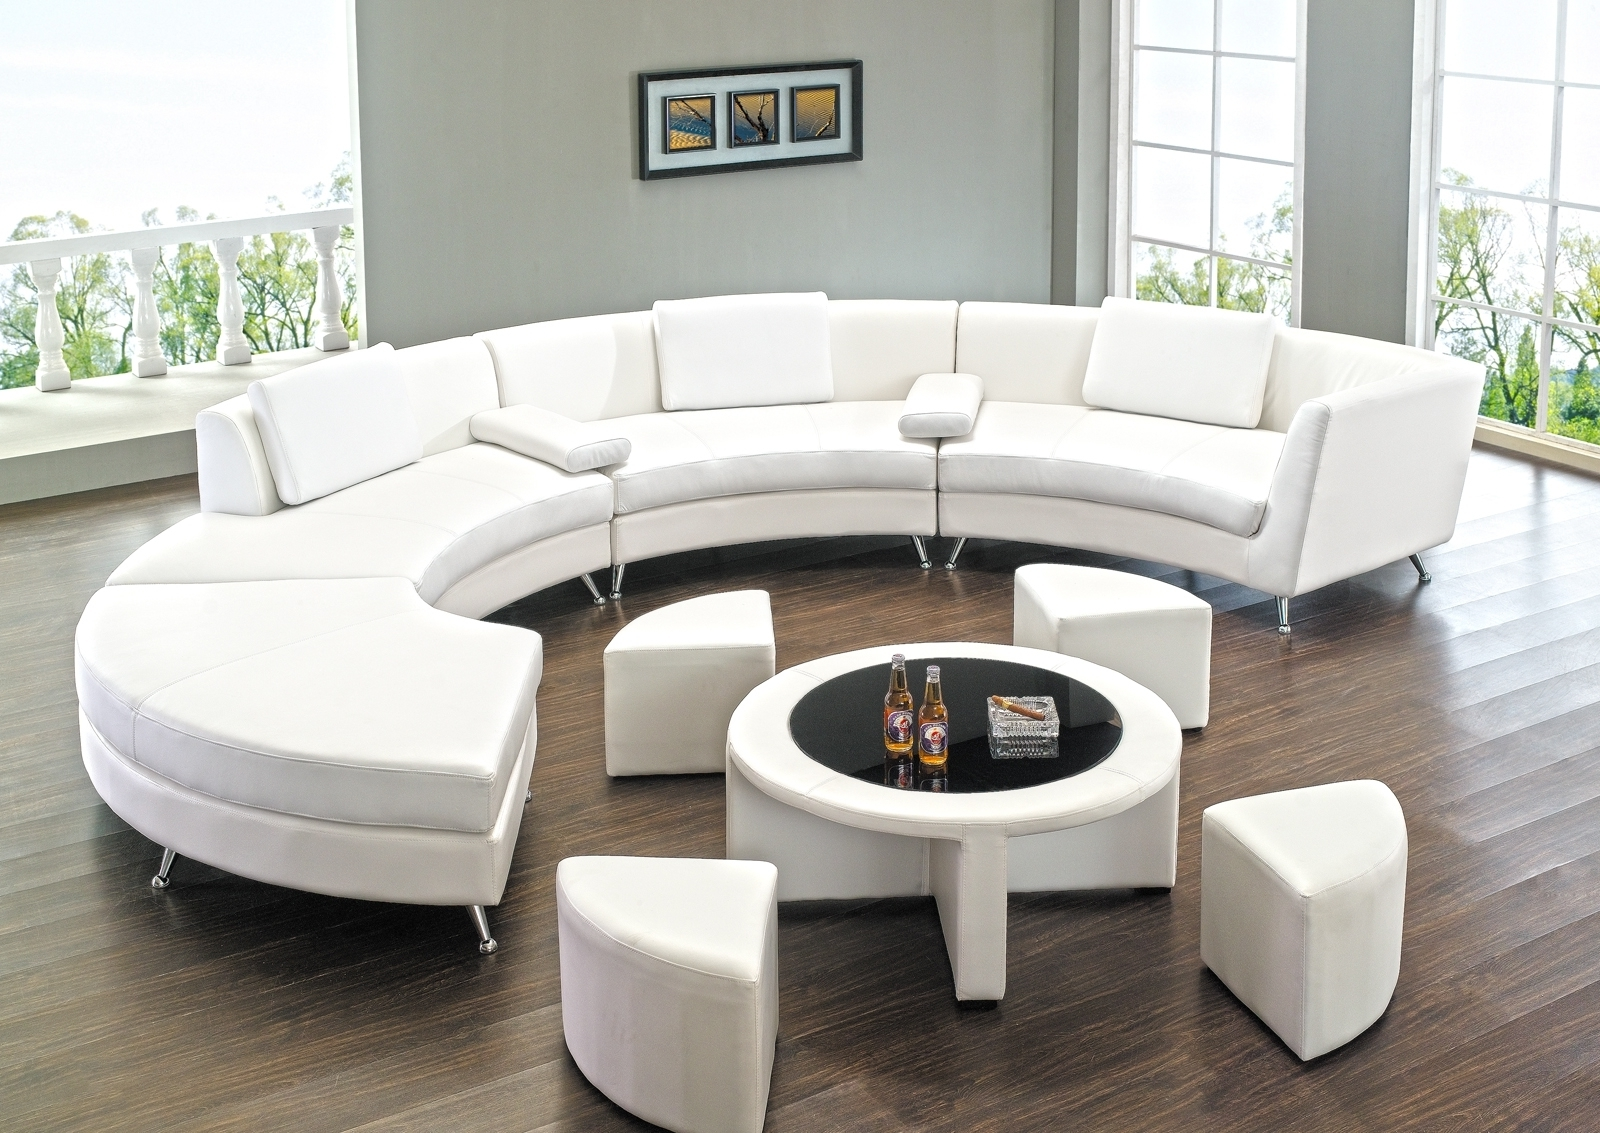 Round Sectional Sofa Has One Of The Best Kind Of Other Is Regarding Preferred Round Sectional Sofas (View 2 of 15)